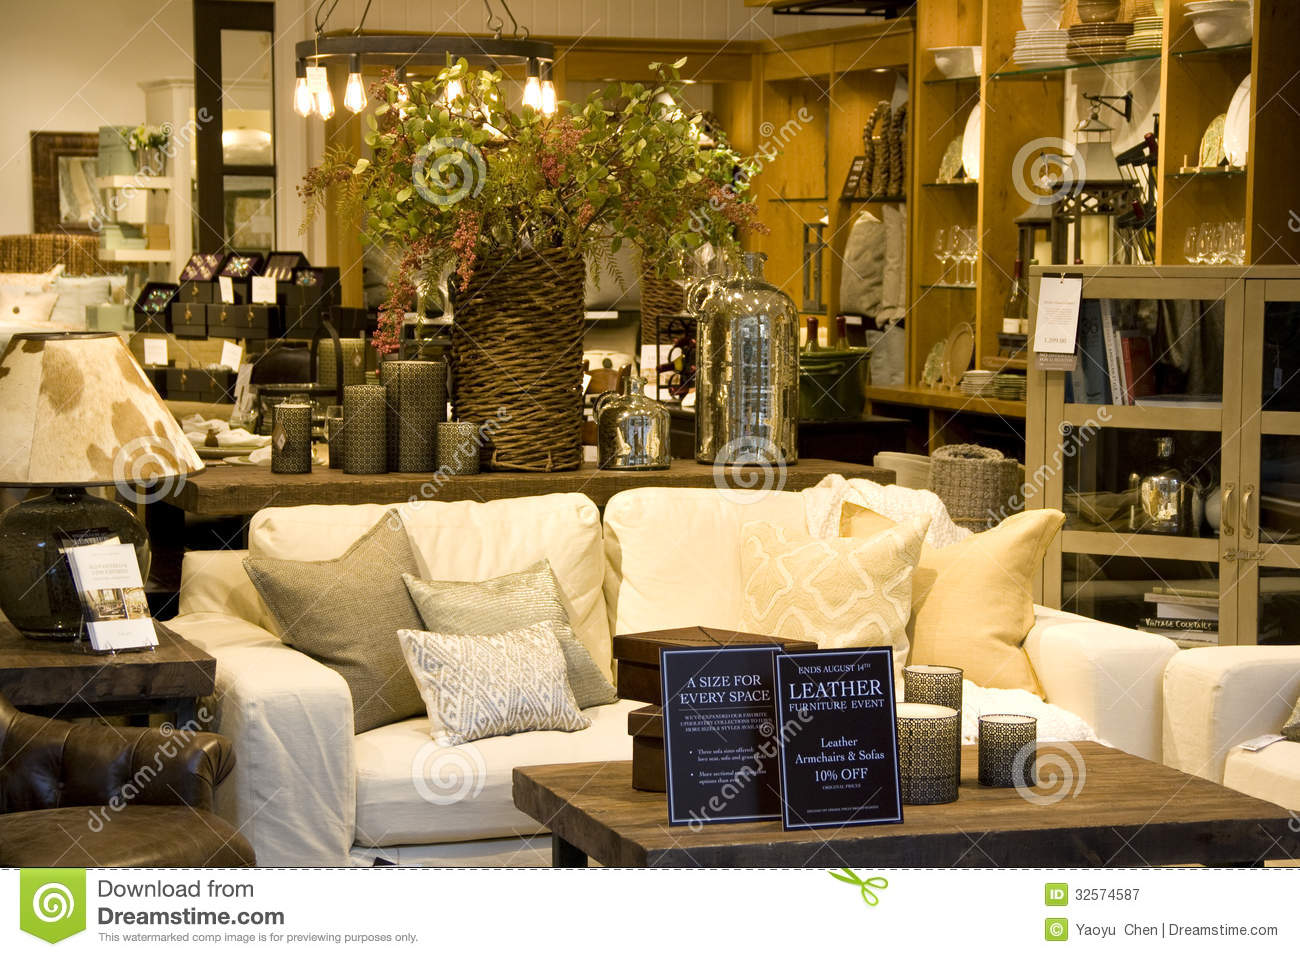 Editorial Stock Photo  Download Furniture Home Decor Store. Furniture Home Decor Store Editorial Photography   Image  32574587